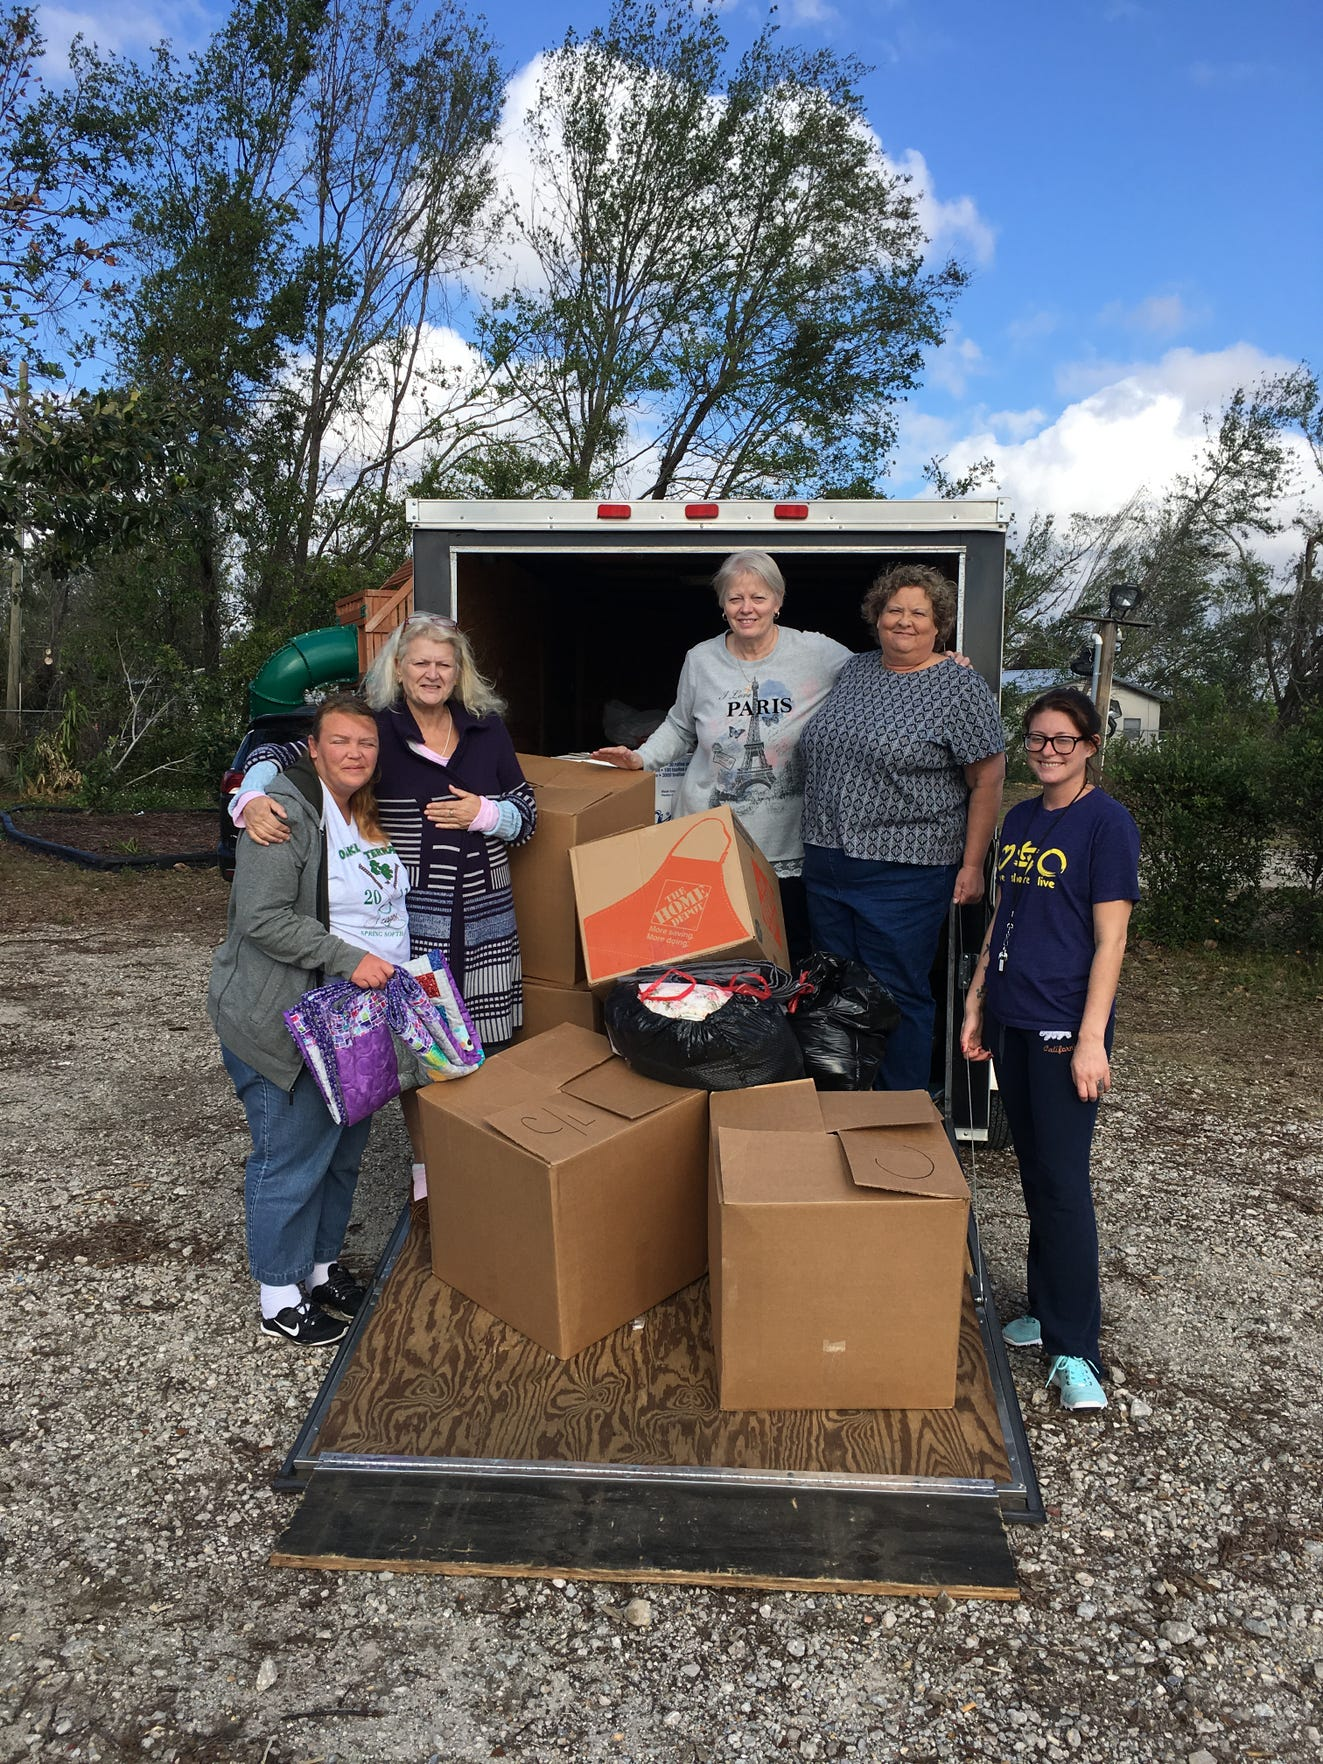 Quilt Blessings for the Panhandle packs up a load of quilts to take to families hit hard by Hurricane Michael.